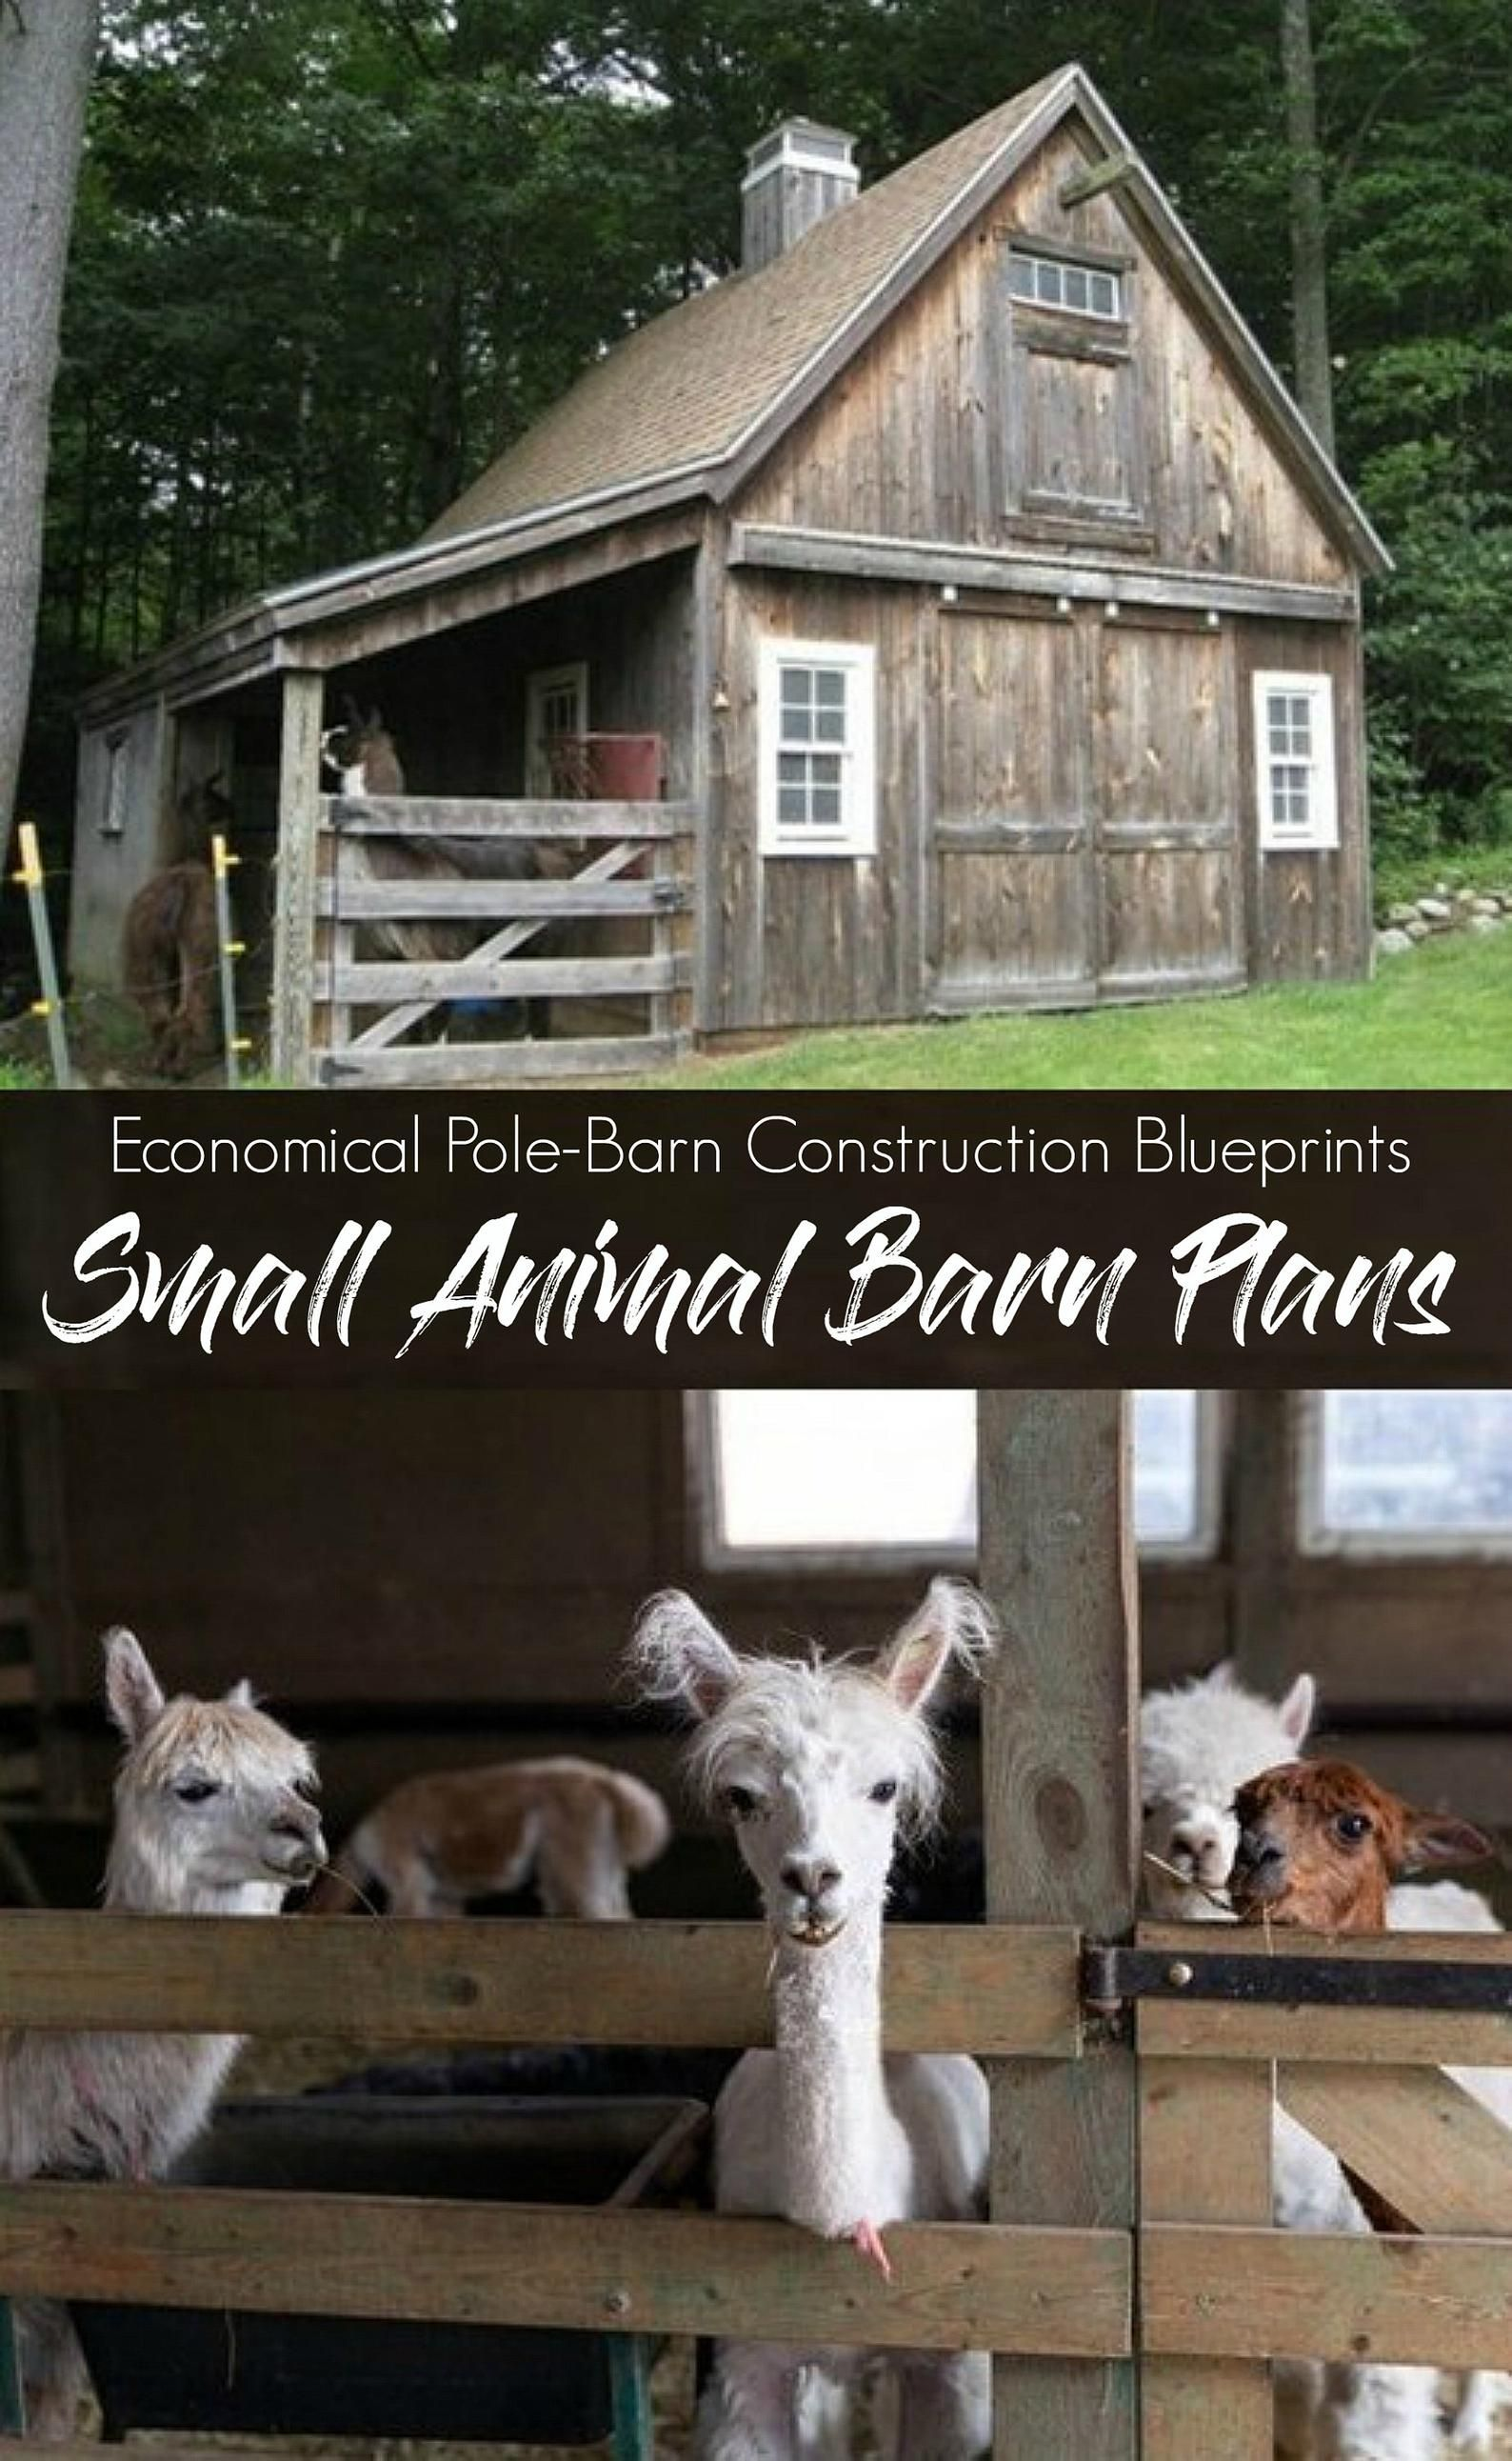 3 Small Animal Barn Plans - Complete Pole-Barn Construction Blueprints